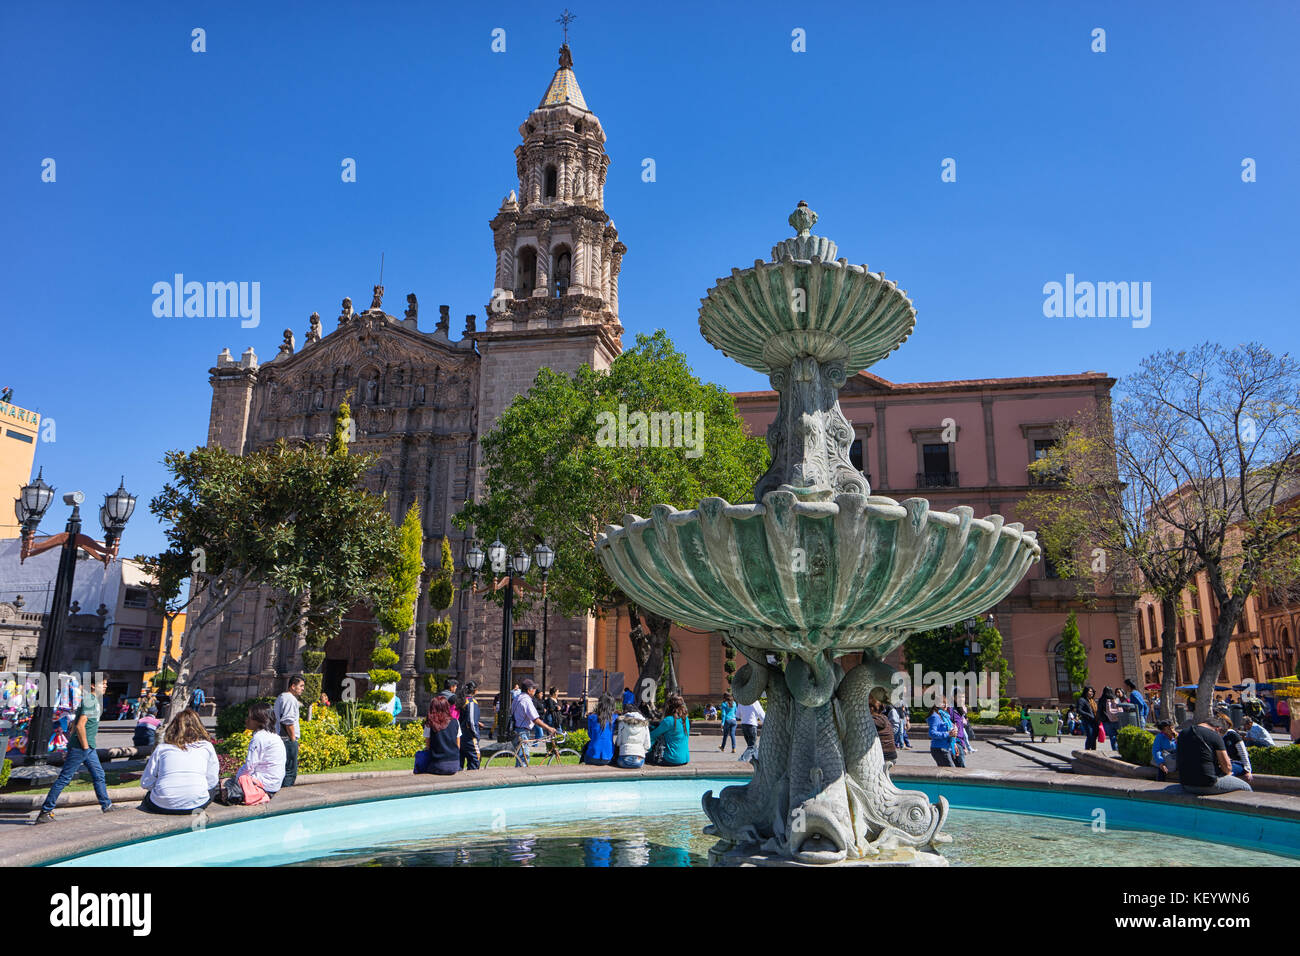 January 18, 2016 San Luis Potosi, Mexico: people sitting on rim of water fountain in front of San Luis cathedral - Stock Image